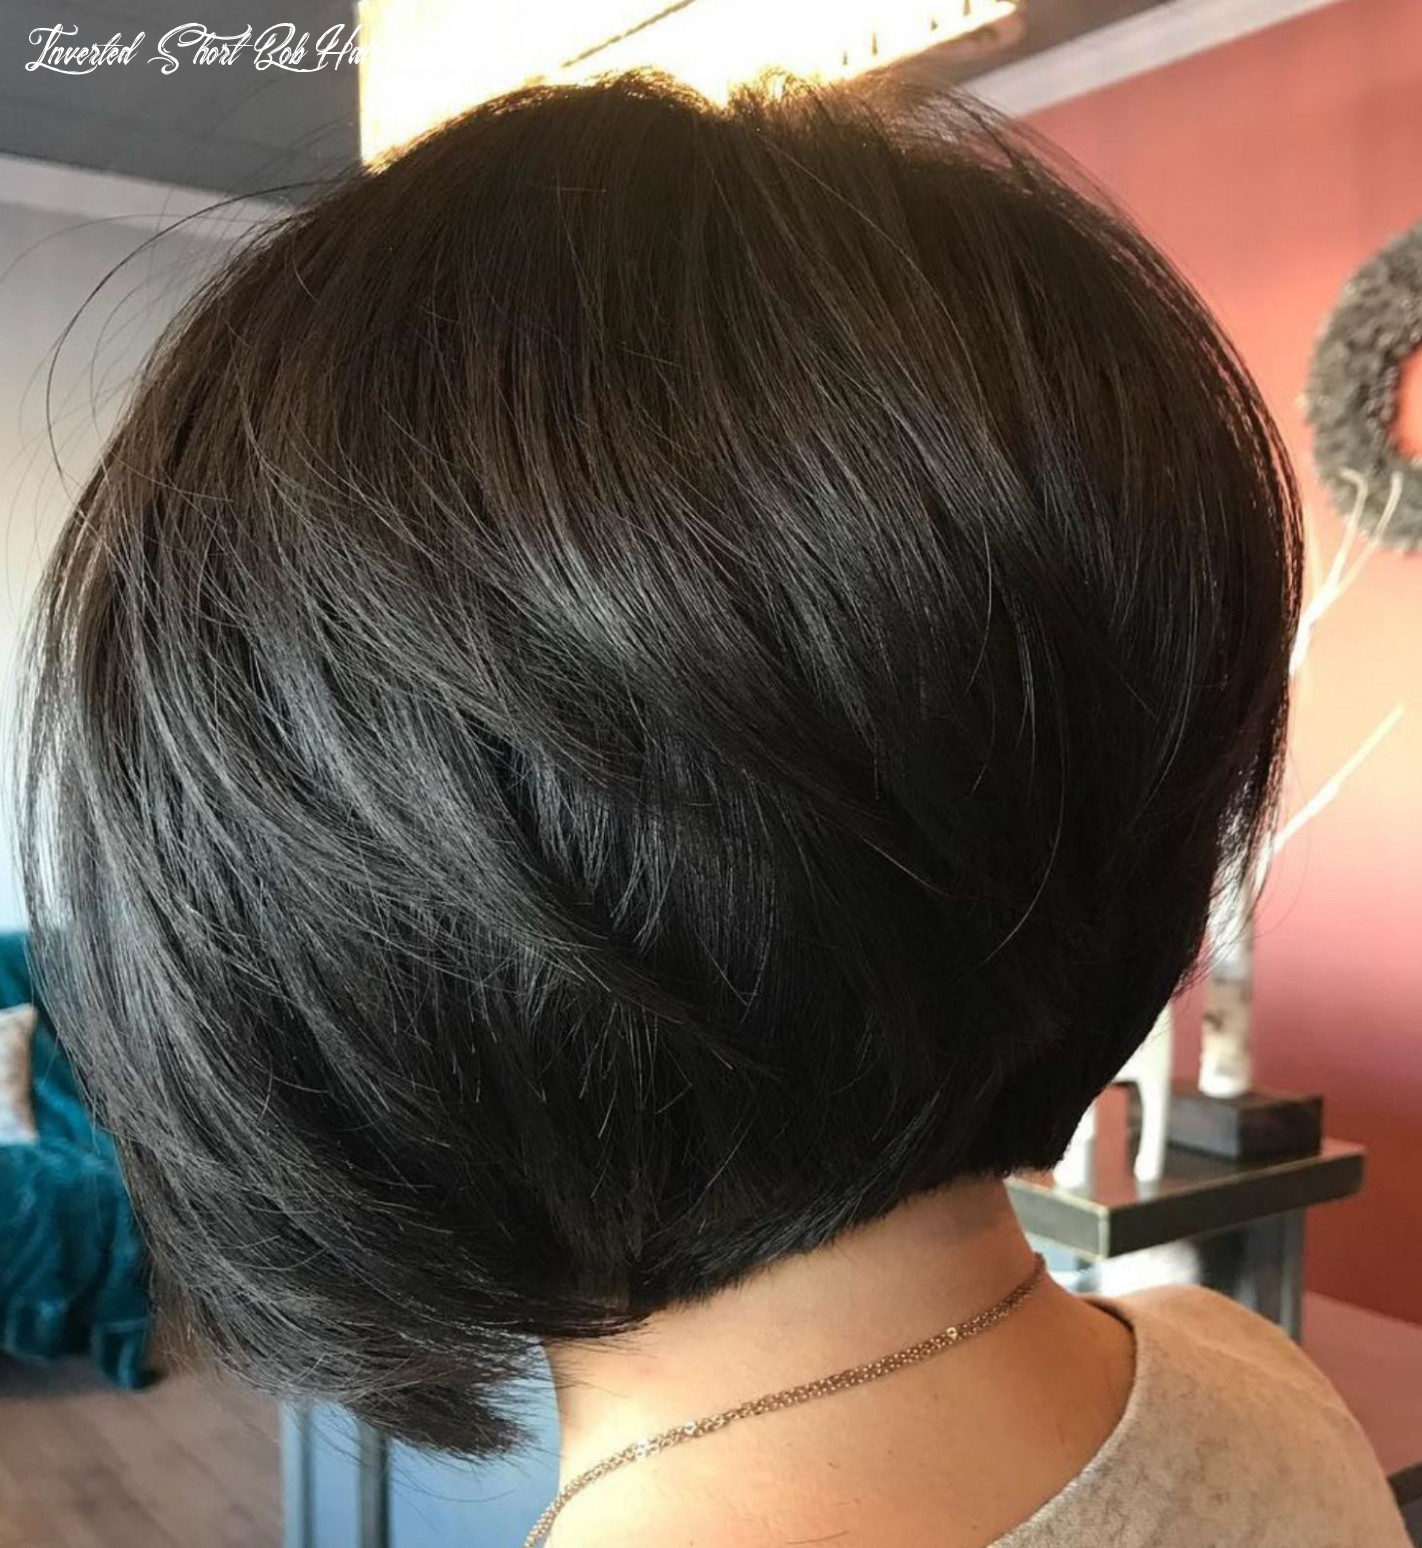 Pin on hair inverted short bob hairstyle